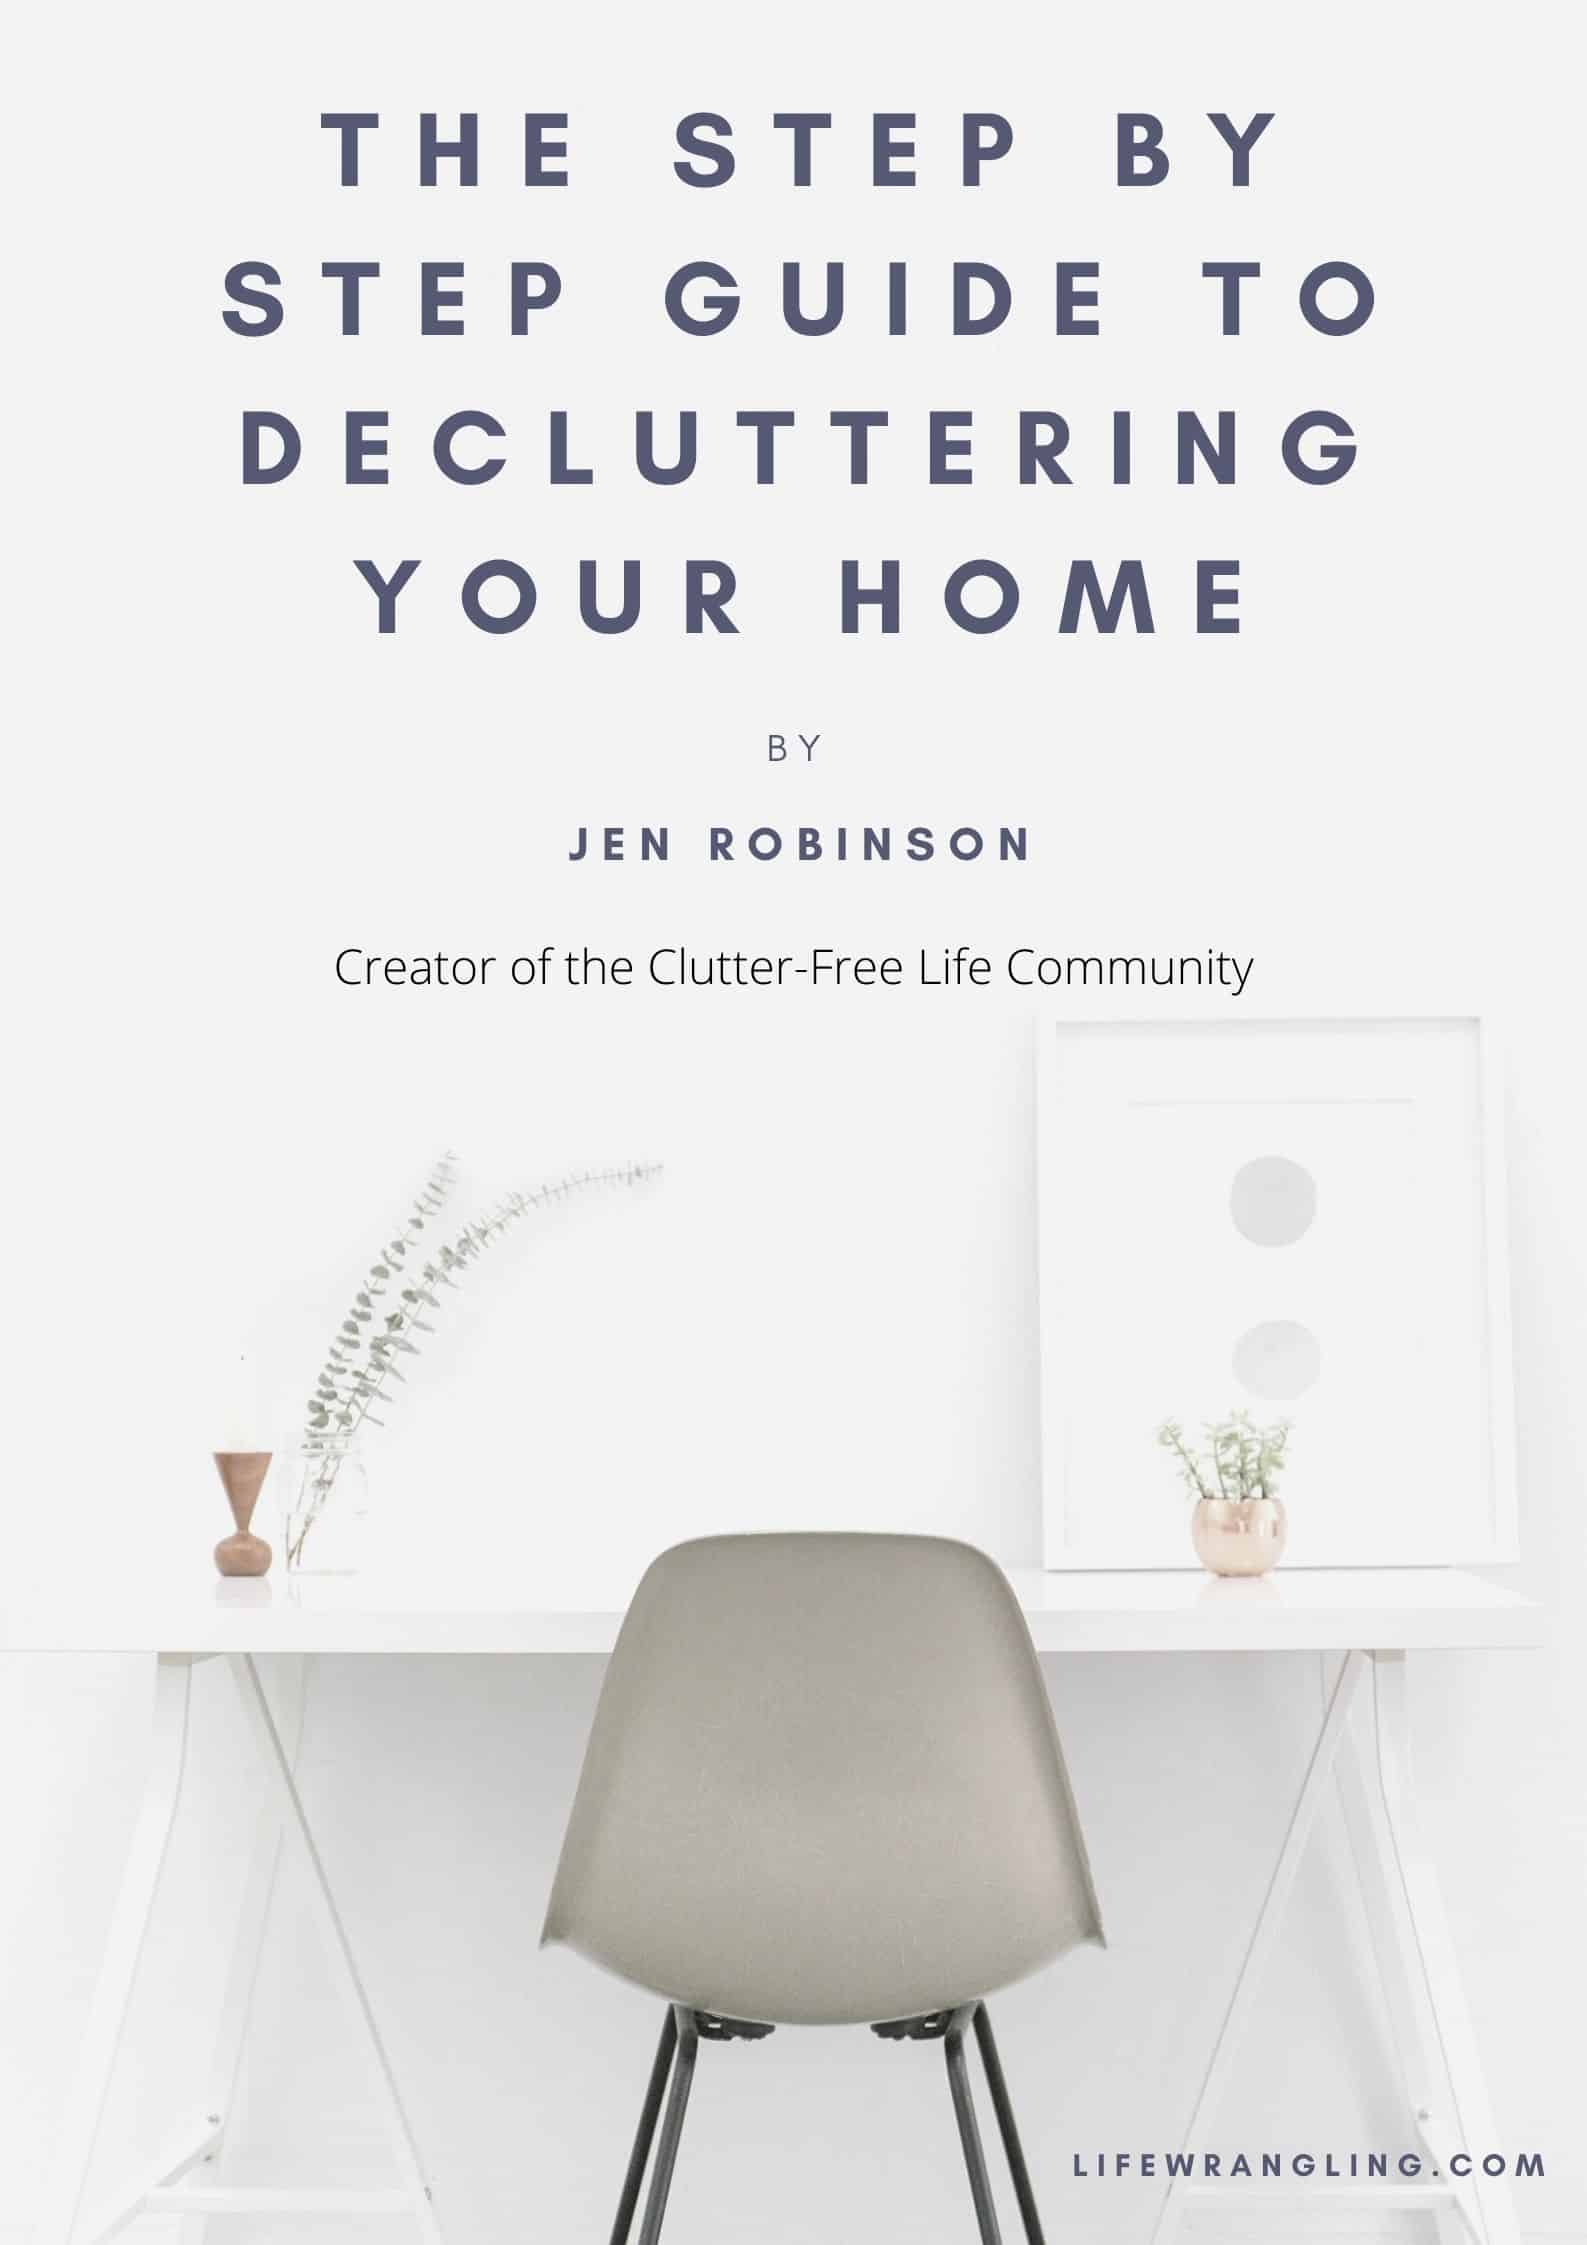 The Step By Step Guide To Decluttering Your Home 1